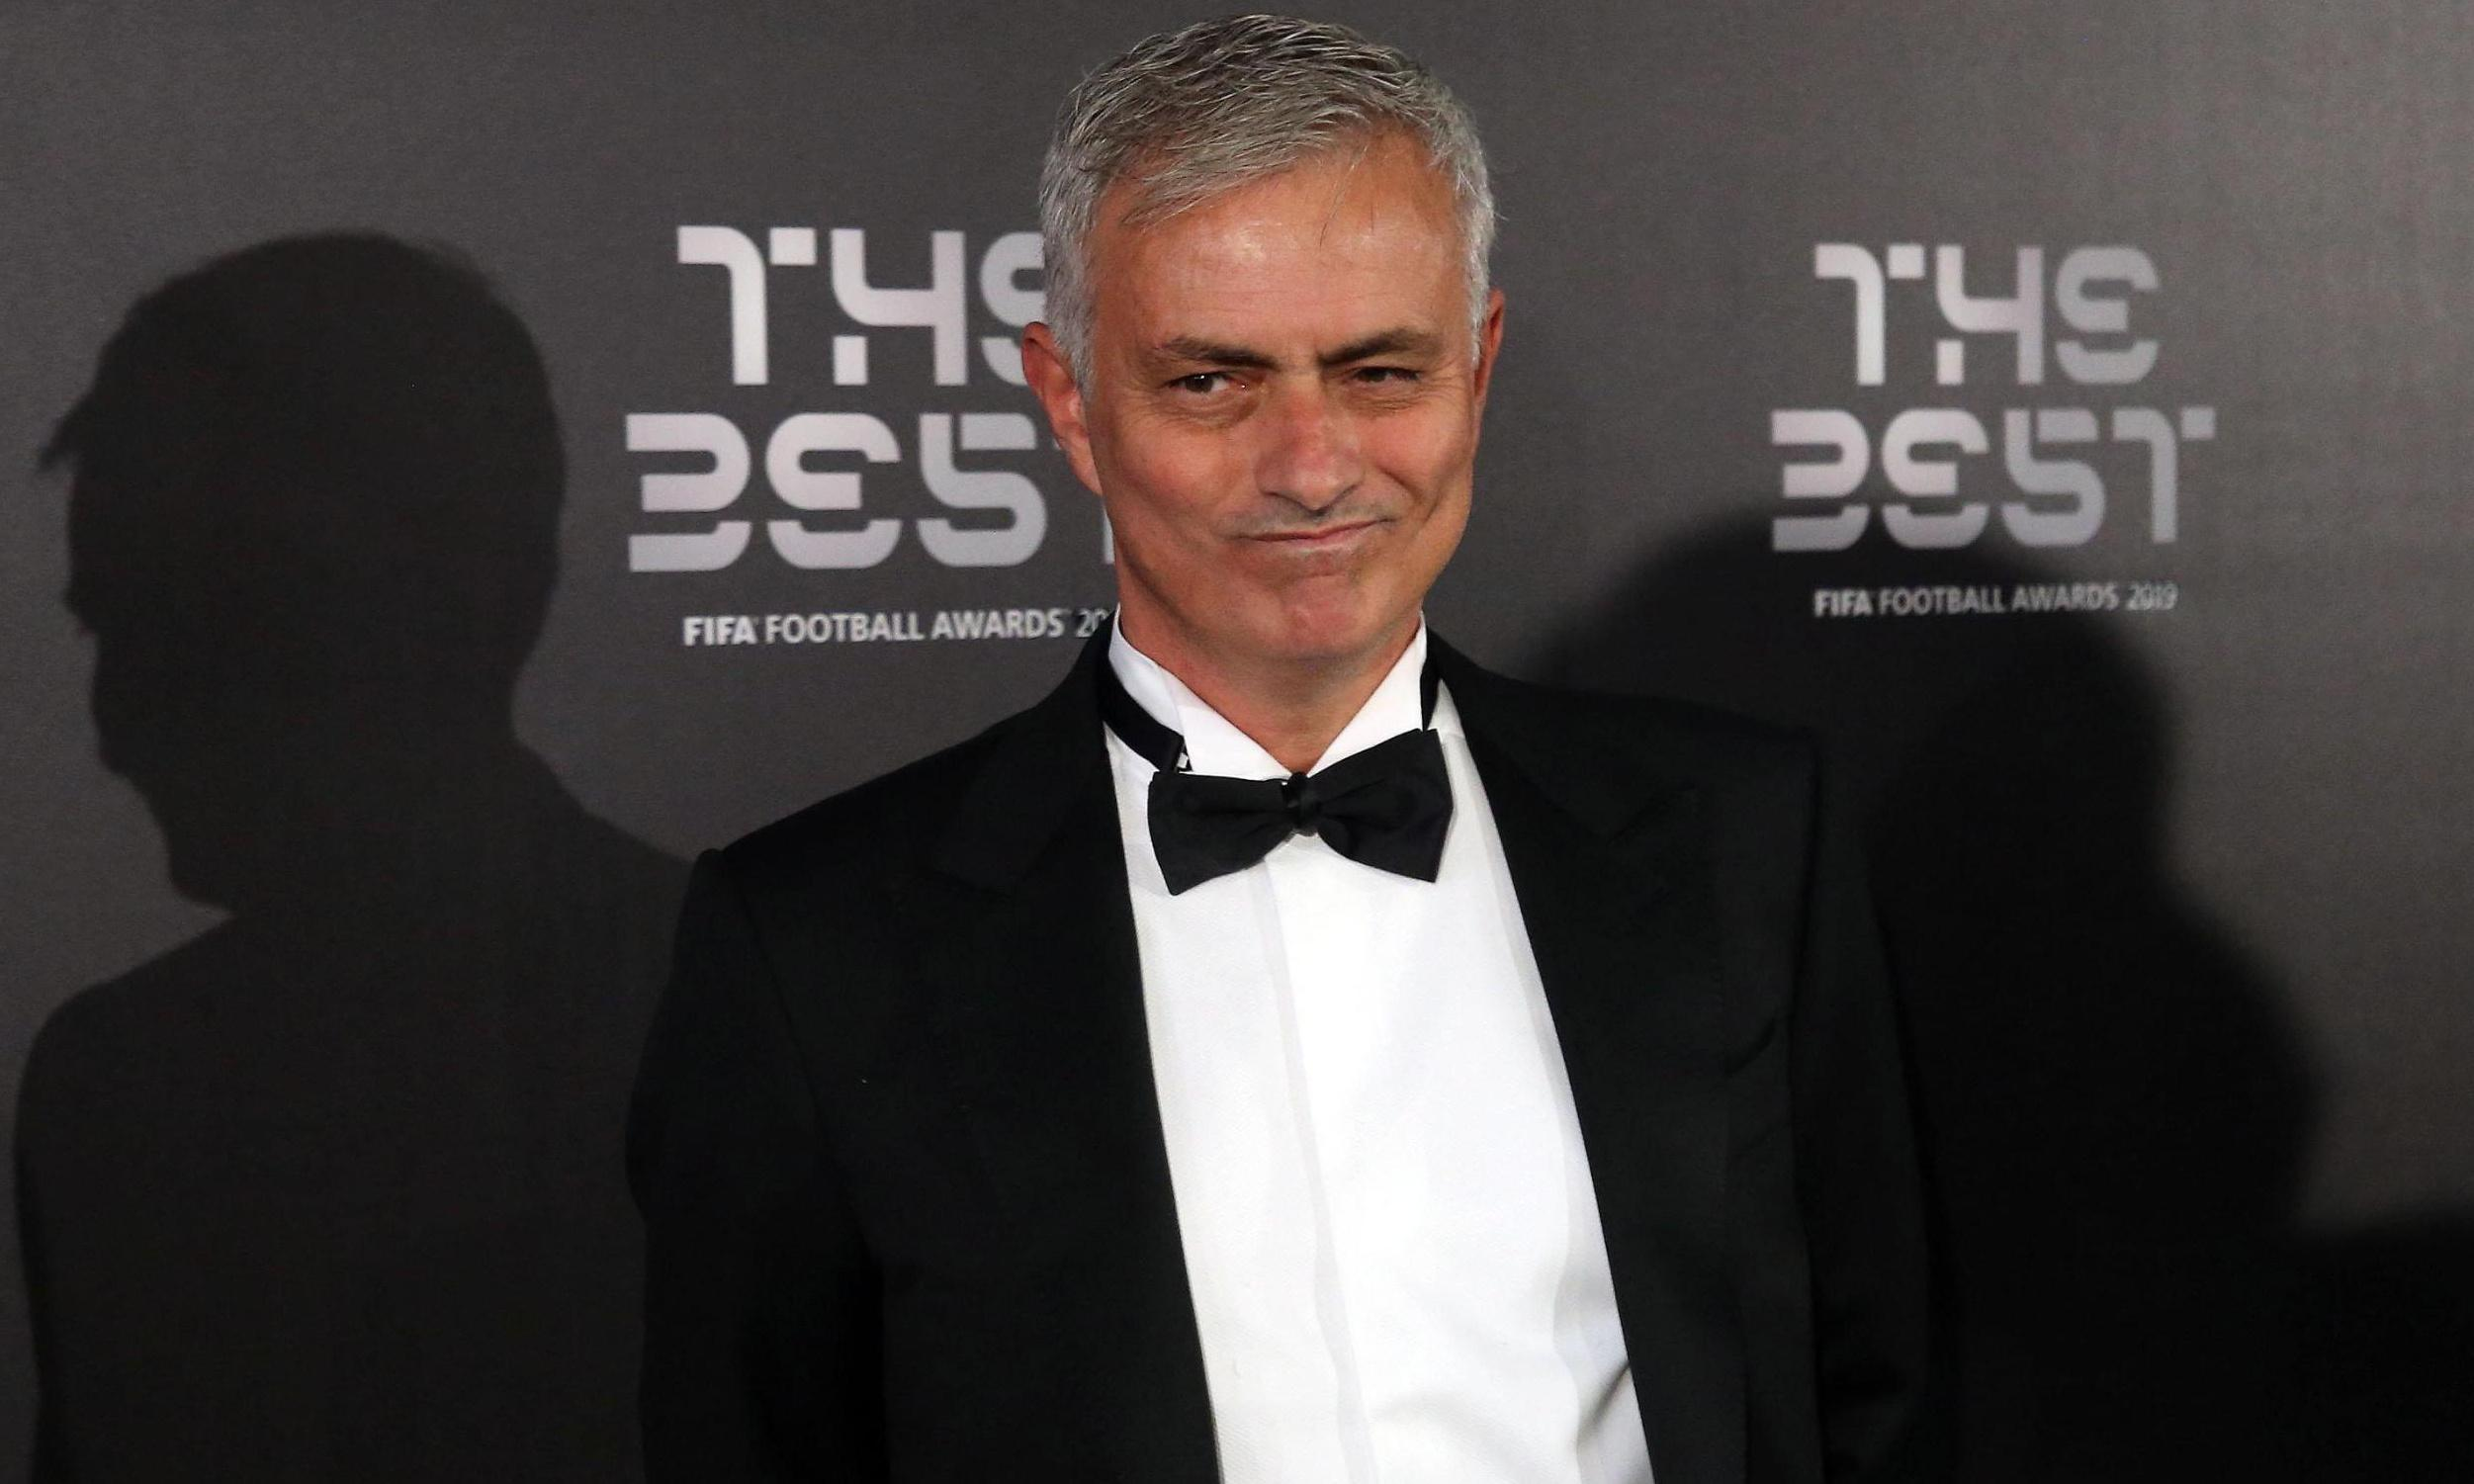 José Mourinho rejects Lyon approach because 'he has chosen another club'